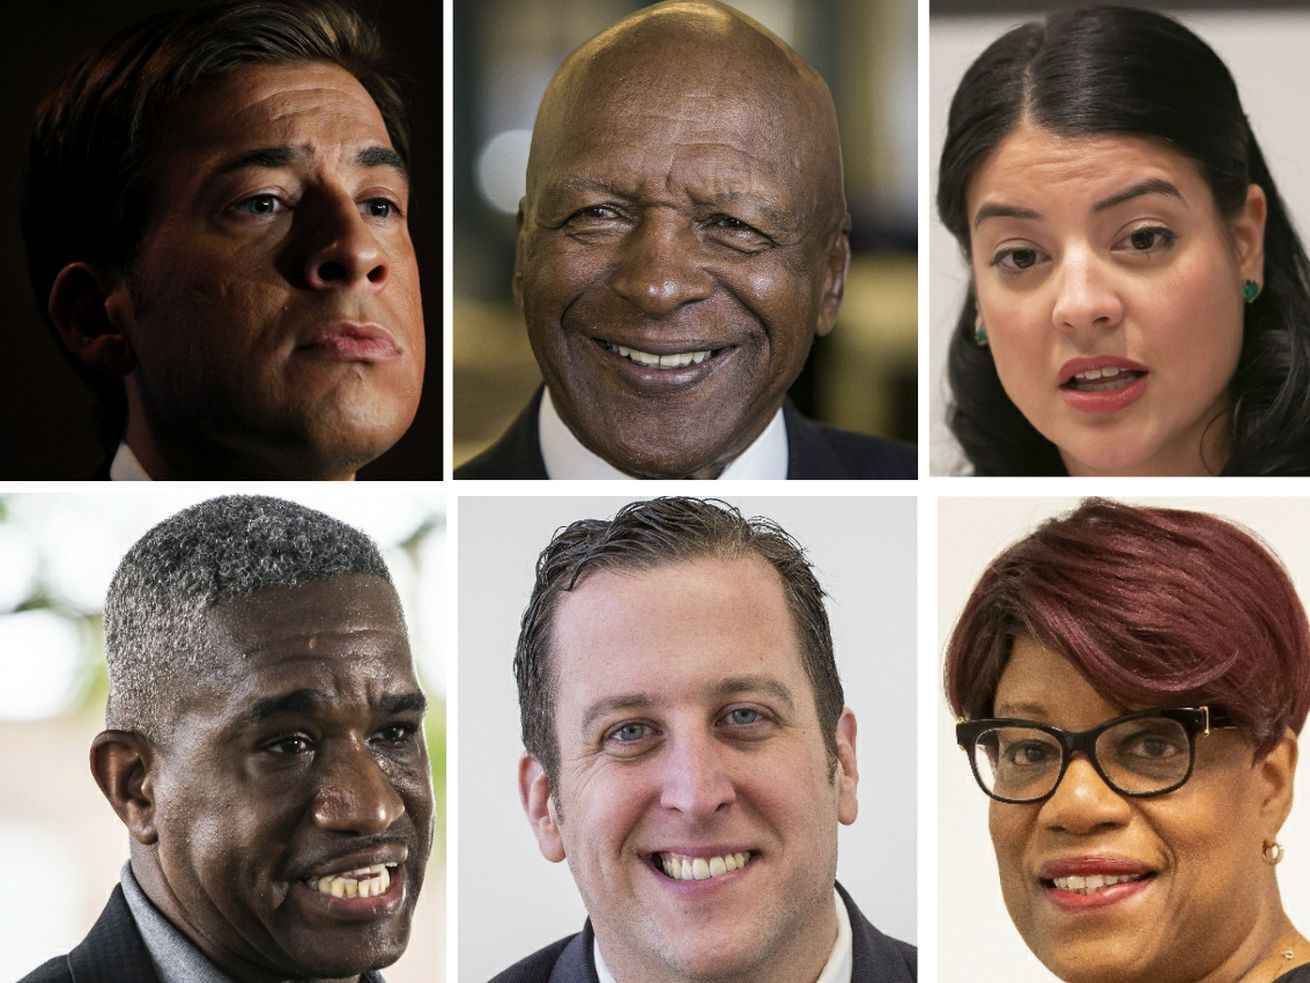 Illinois Secretary of State Jesse White, top row center, in 2018; and the Democrats vying to succeed him, clockwise from top left, former state Treasurer Alexi Giannoulias in 2010; City Clerk Anna Valencia in 2018; Ald. Pat Dowell (3rd) in 2019; State Sen. Michael Hastings in 2016; Ald. David Moore (17th), on June 29, 2020.